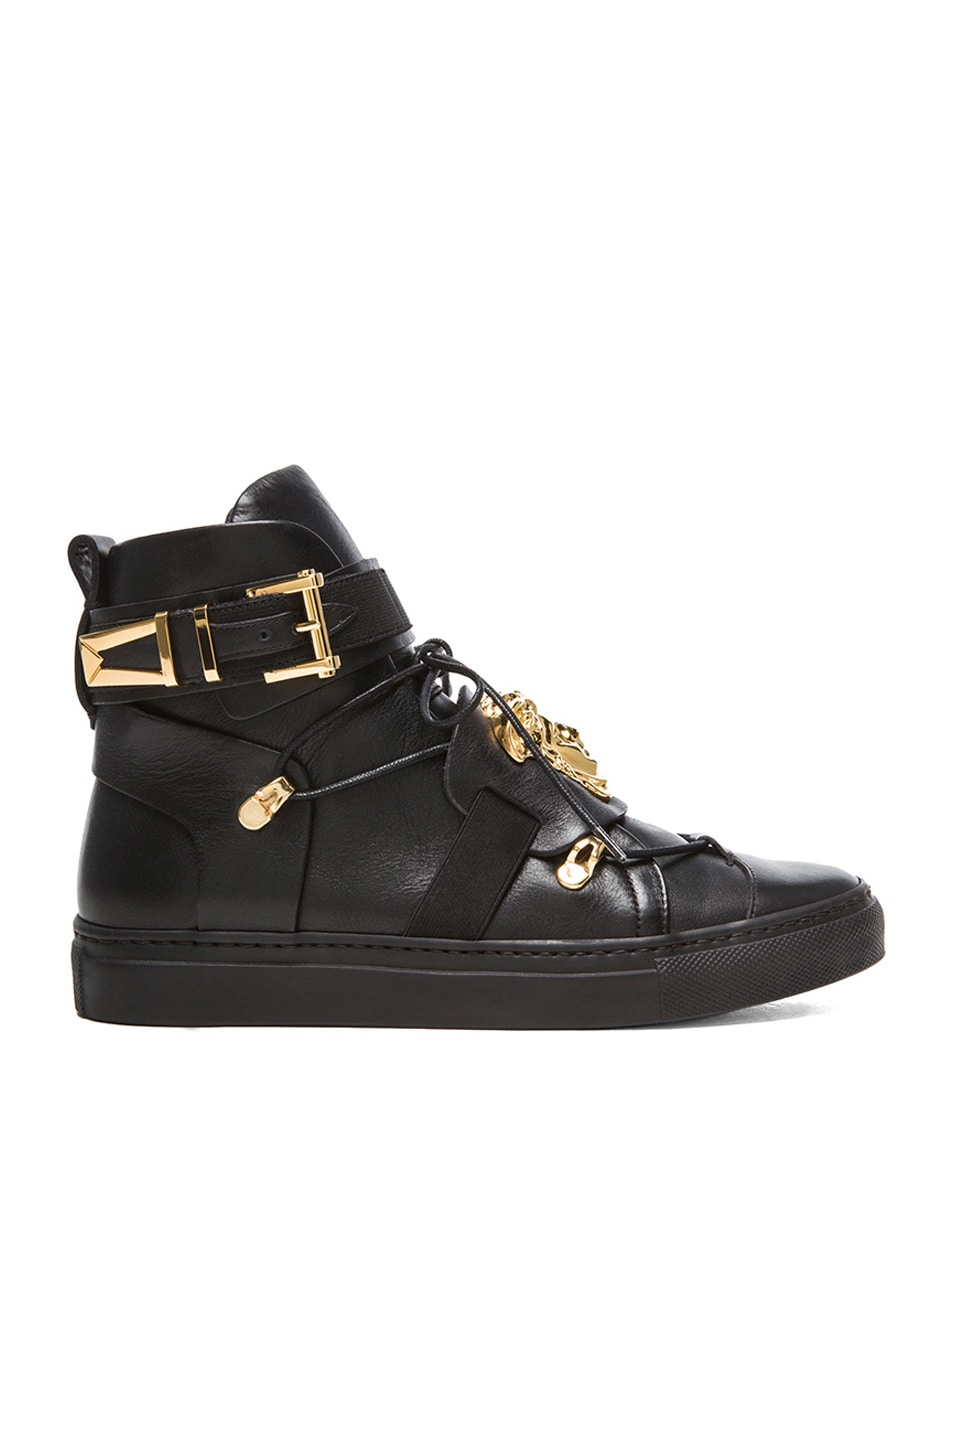 Image 1 of VERSACE High Top Medusa Head Sneakers in Black & Gold